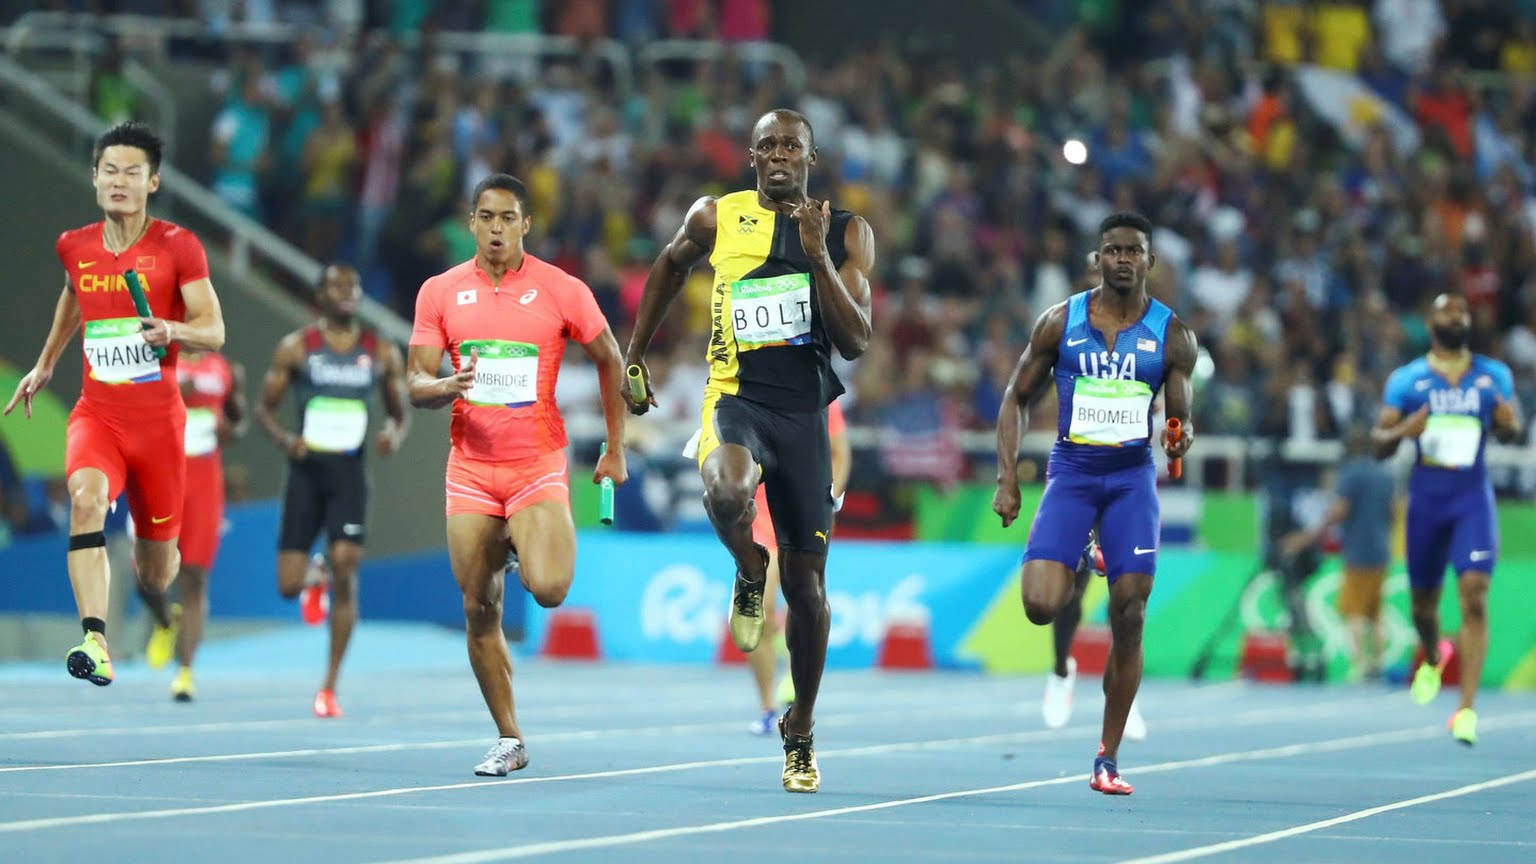 Rio 2016 Olympics: Asafa, Blake, Ashmeade & Usain Bolt Close Down The 4x100m Relay